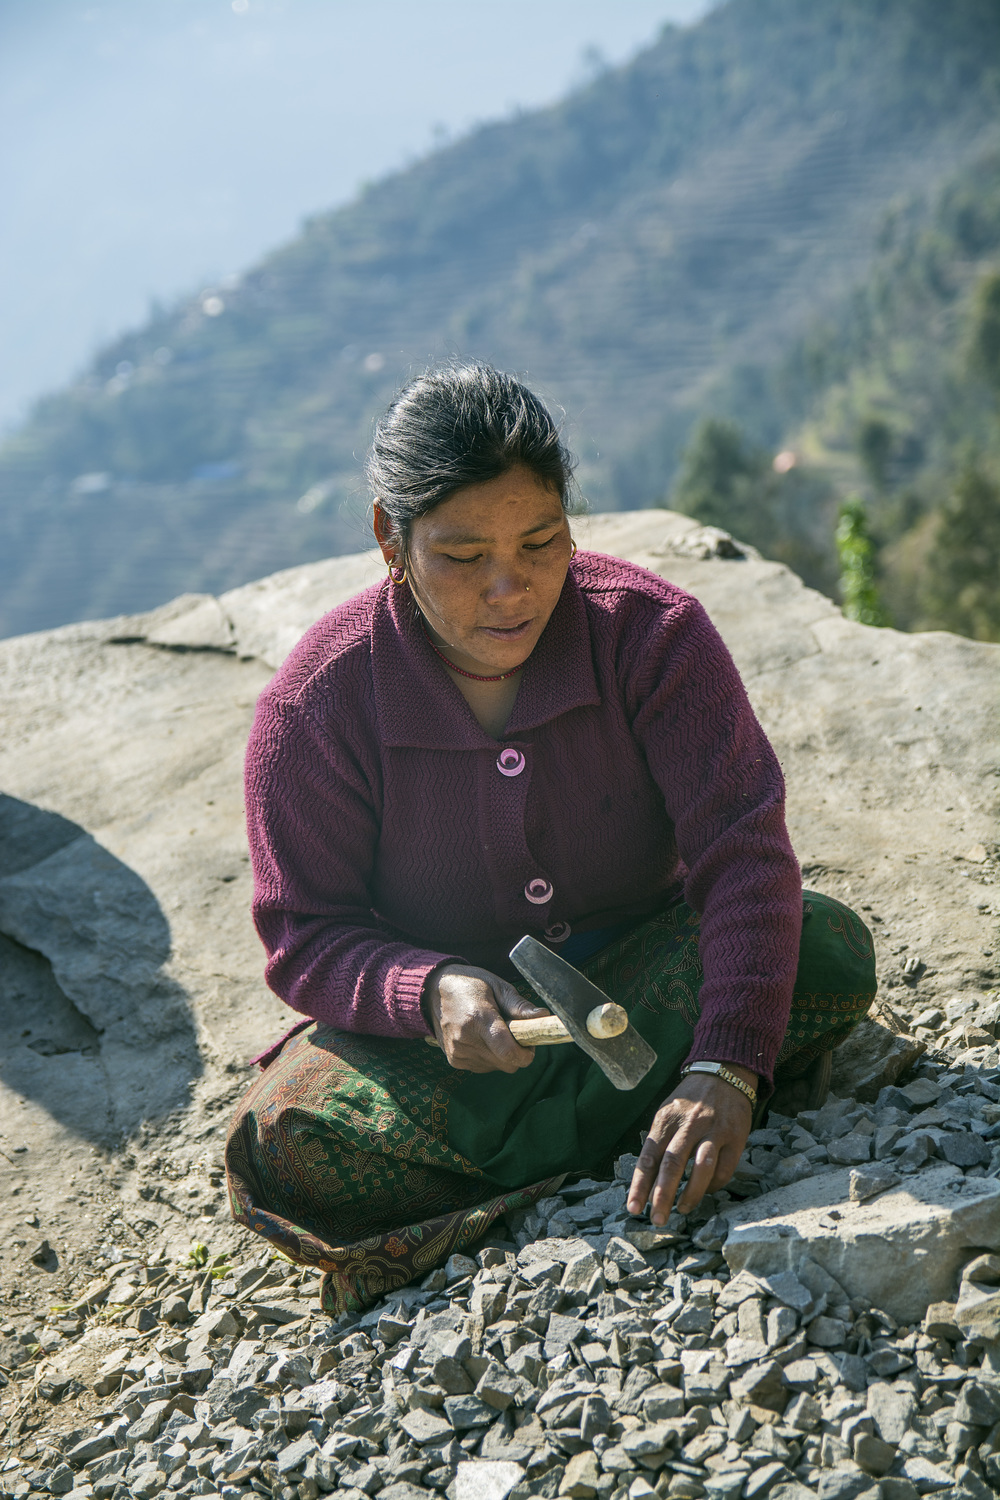 After Kalimaya Tamang spends the morning watering the new seeds in her family's fields and gets her daughter ready for school, she works to break stone to reconstruct the church building - photo by Mark Morrison.